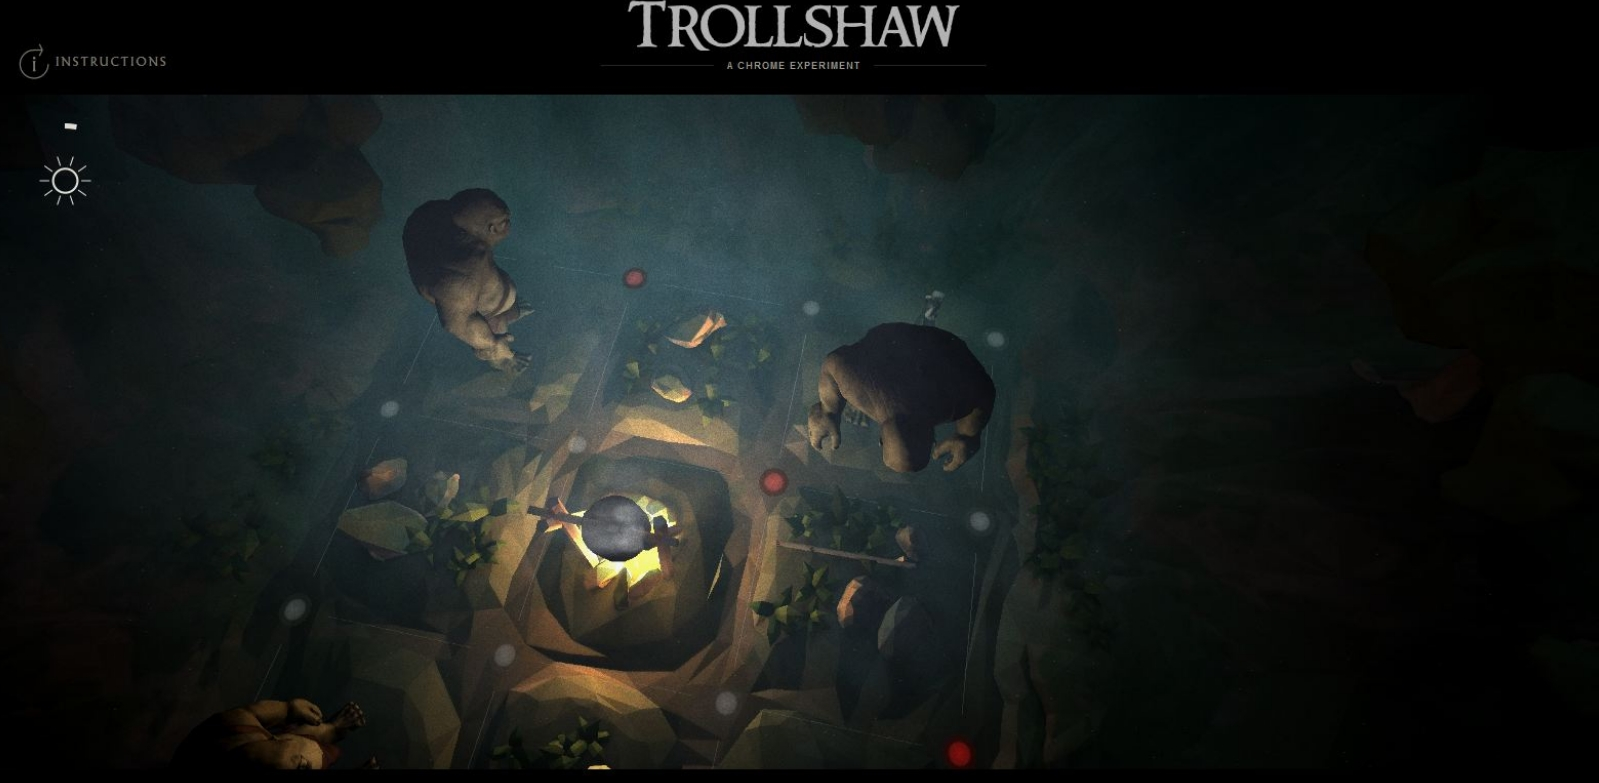 The Hobbit: The Desolation Of Smaug Google Chrome Experiment Trollshaw Image